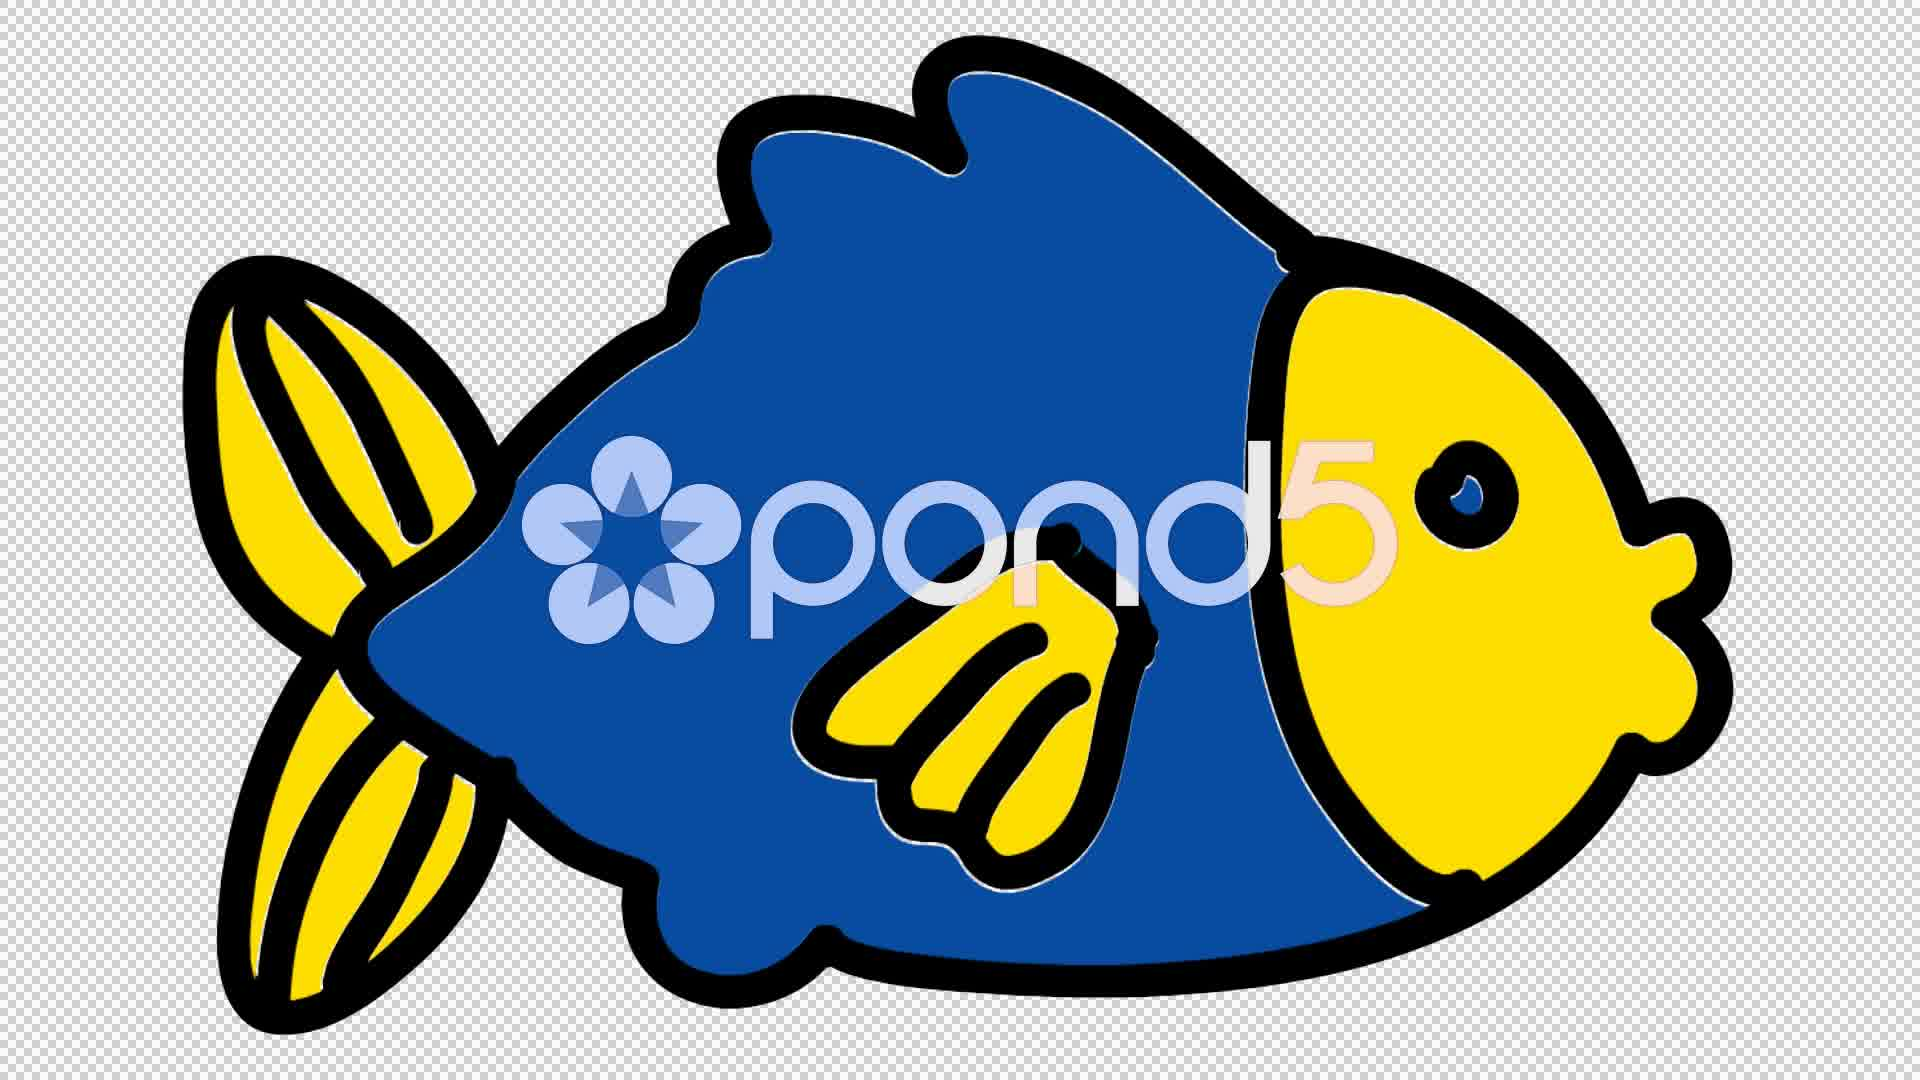 1920x1080 Video Fish Line Drawing Illustration Animation With Transparent